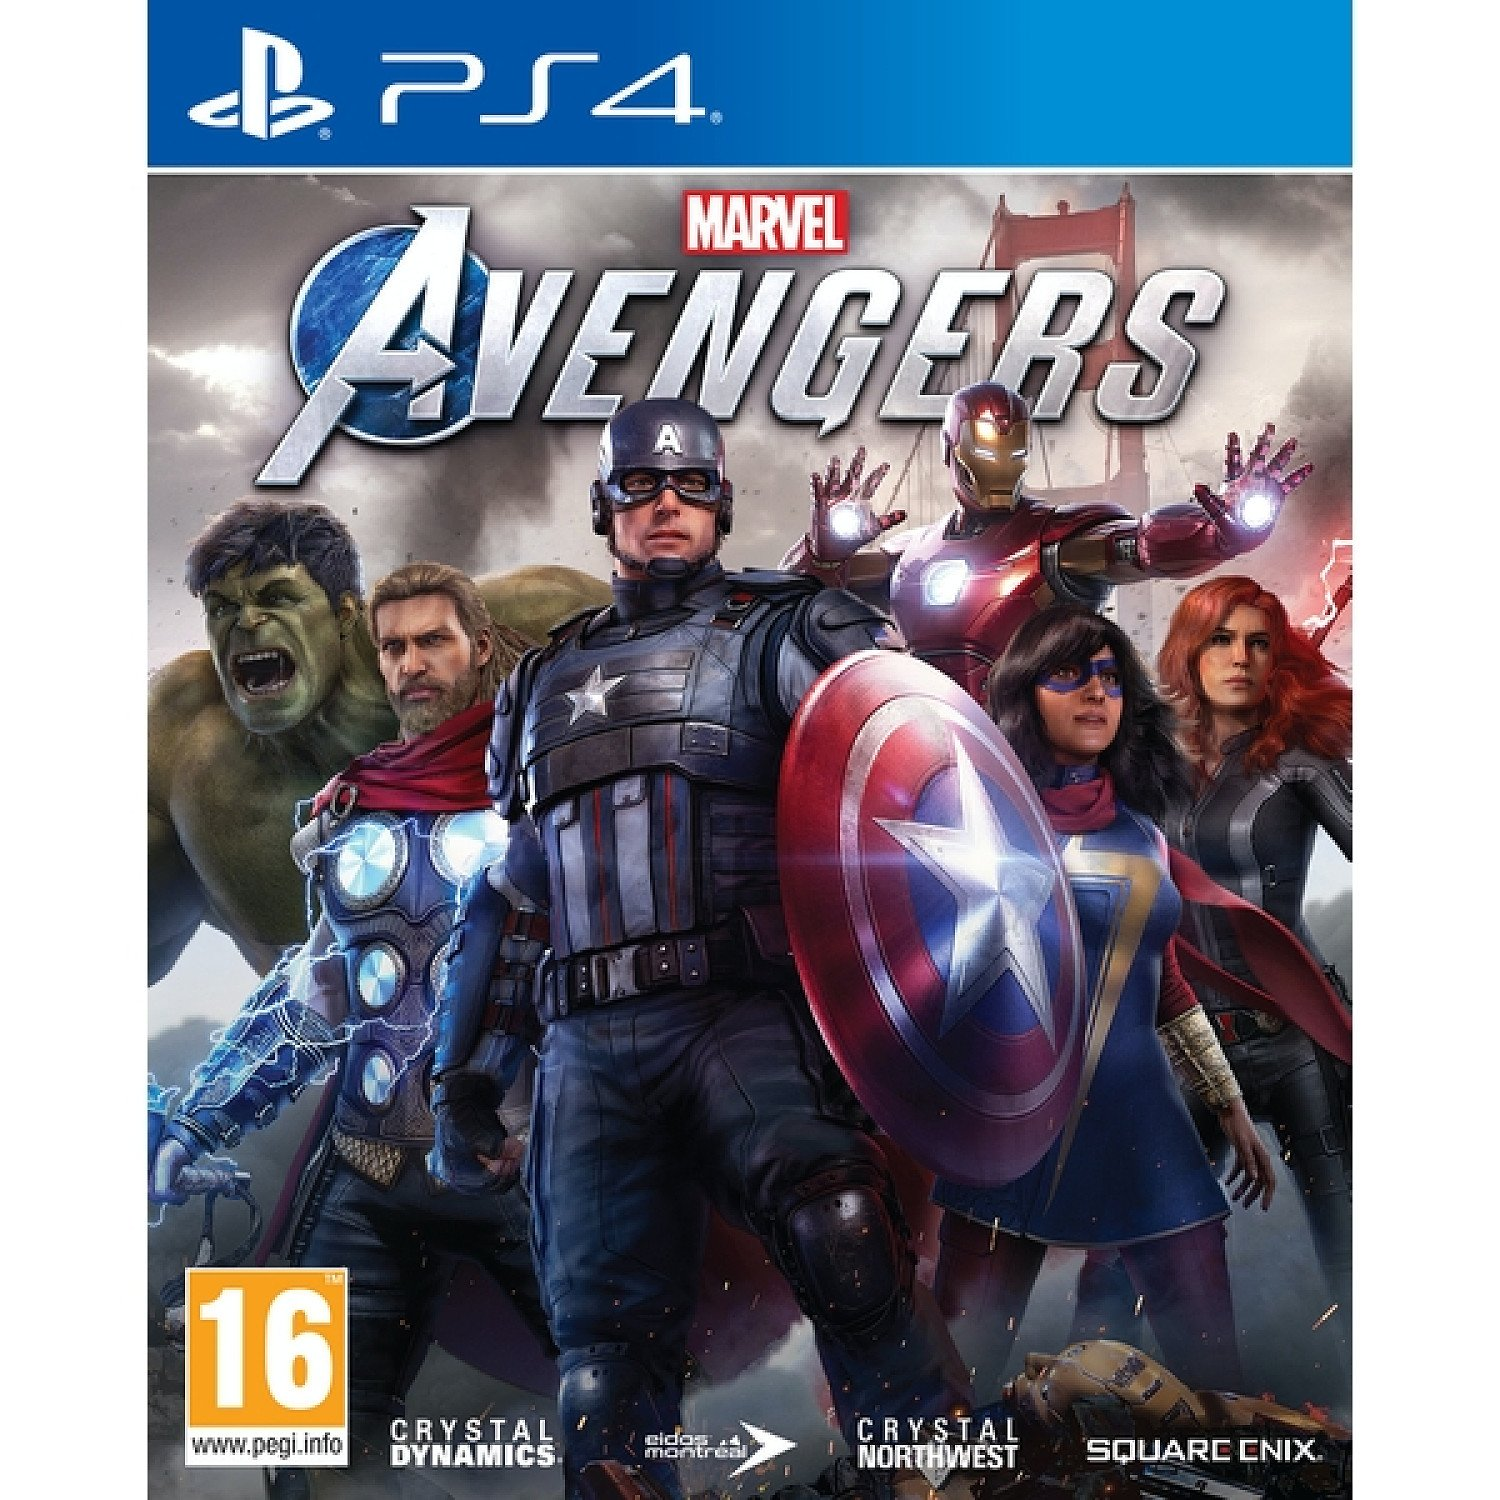 SAVE £20.00 - Marvel's Avengers PS4 Game!